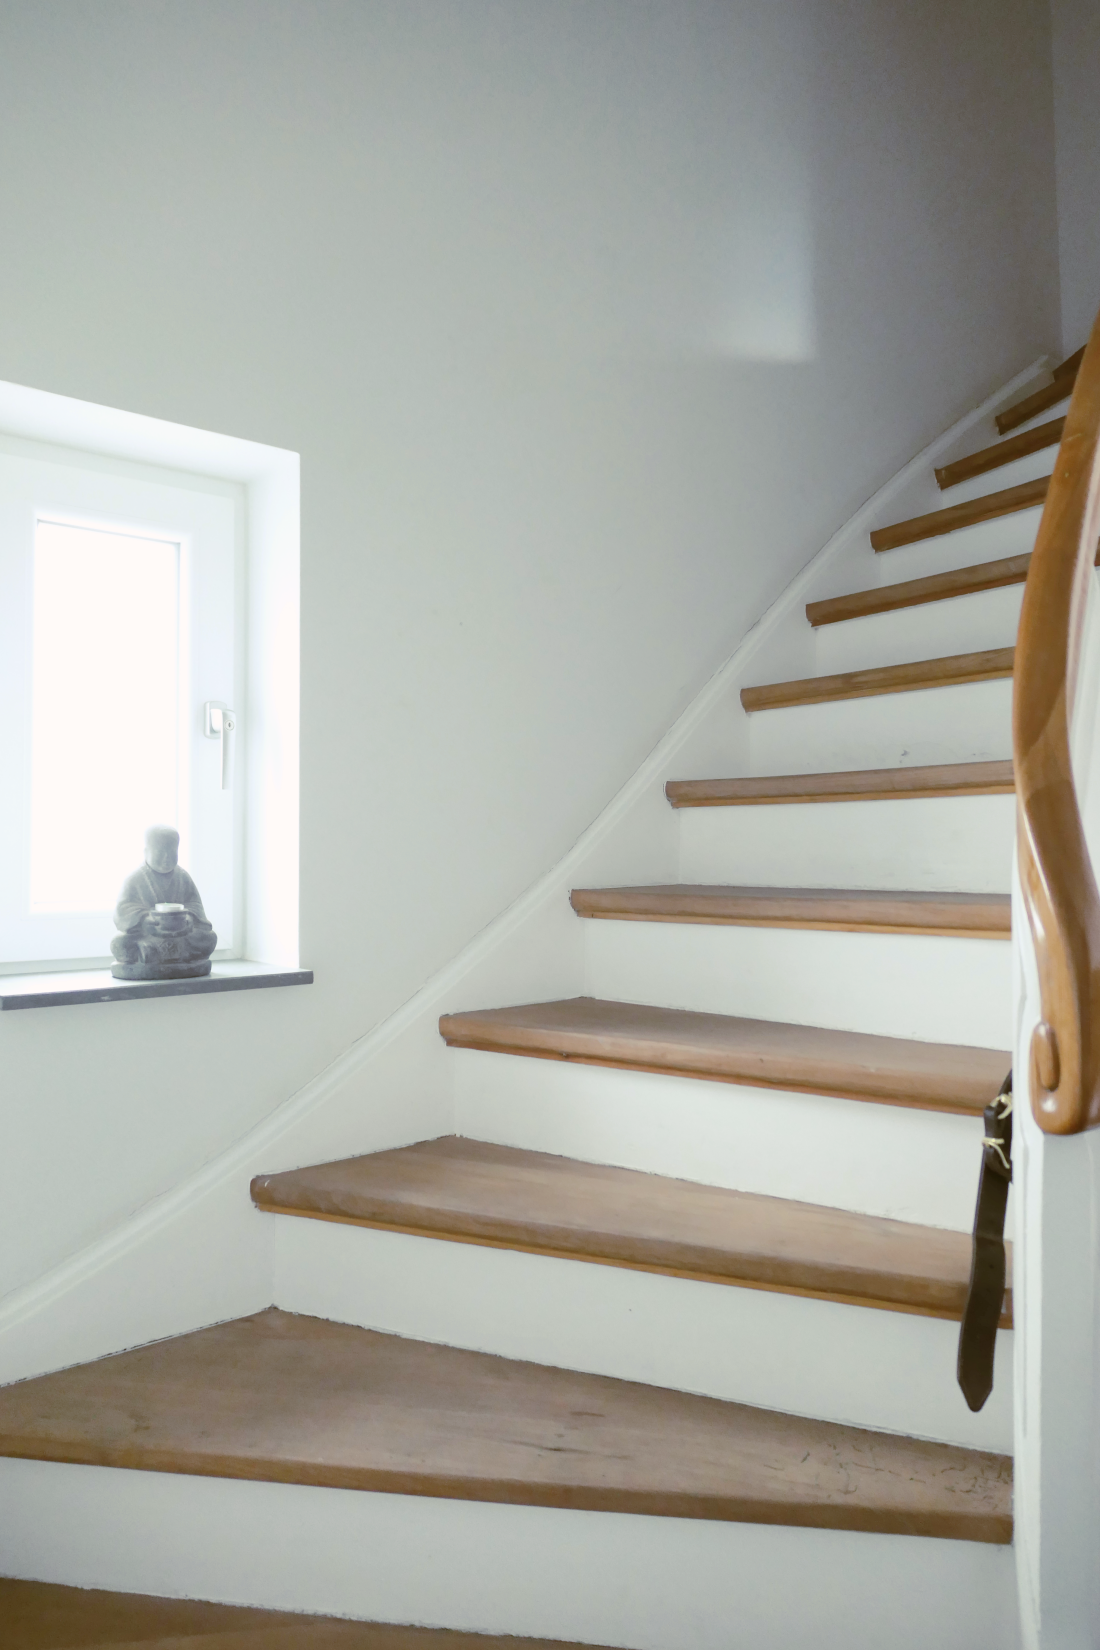 old wooden stairs with wooden banister - decorating - hometour